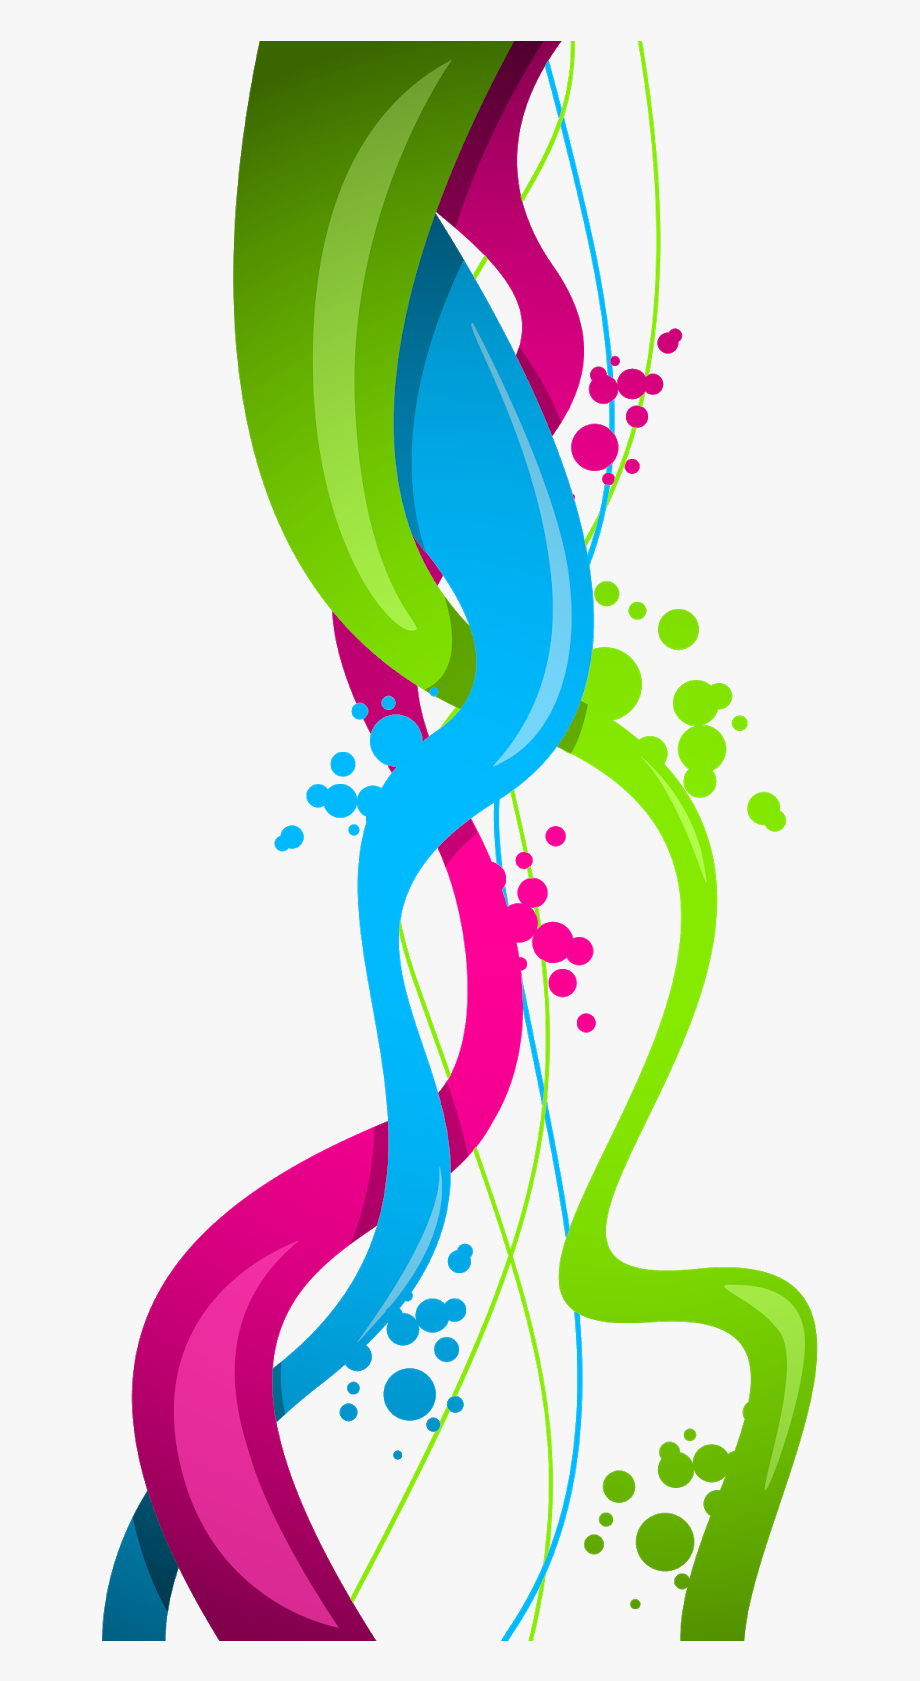 Free clipart abstract png royalty free Cool Abstract Design Free Png Download - Graphic Design #1627852 ... png royalty free